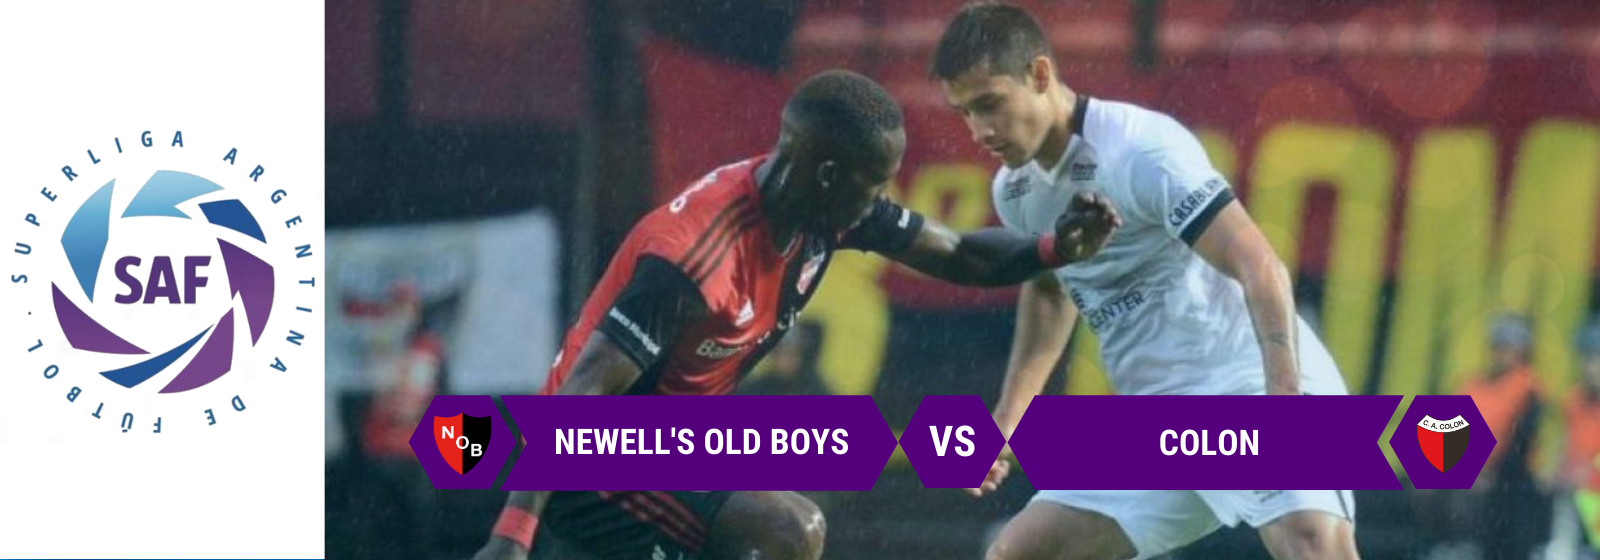 Asianconnect: Newell's vs Colon Odds for February 22, 2020